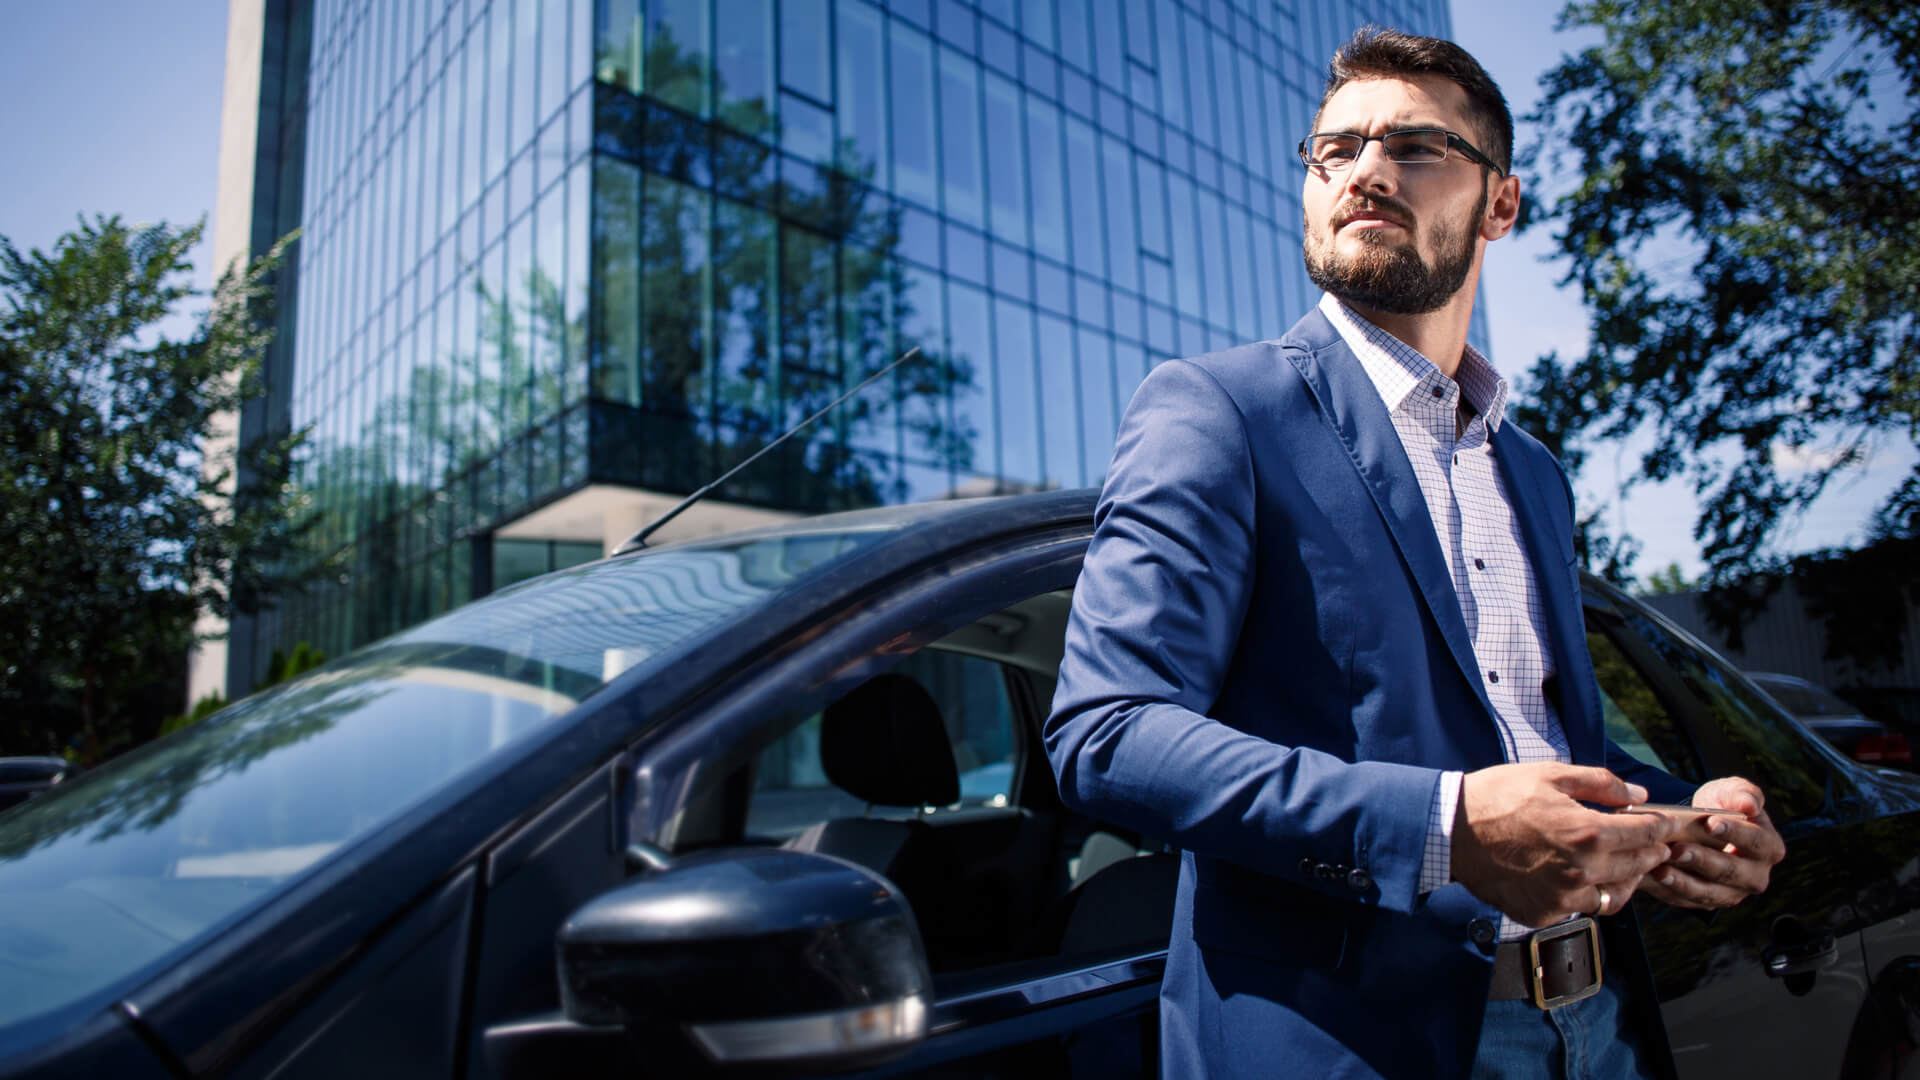 How Much is Business Car Insurance? Header Image